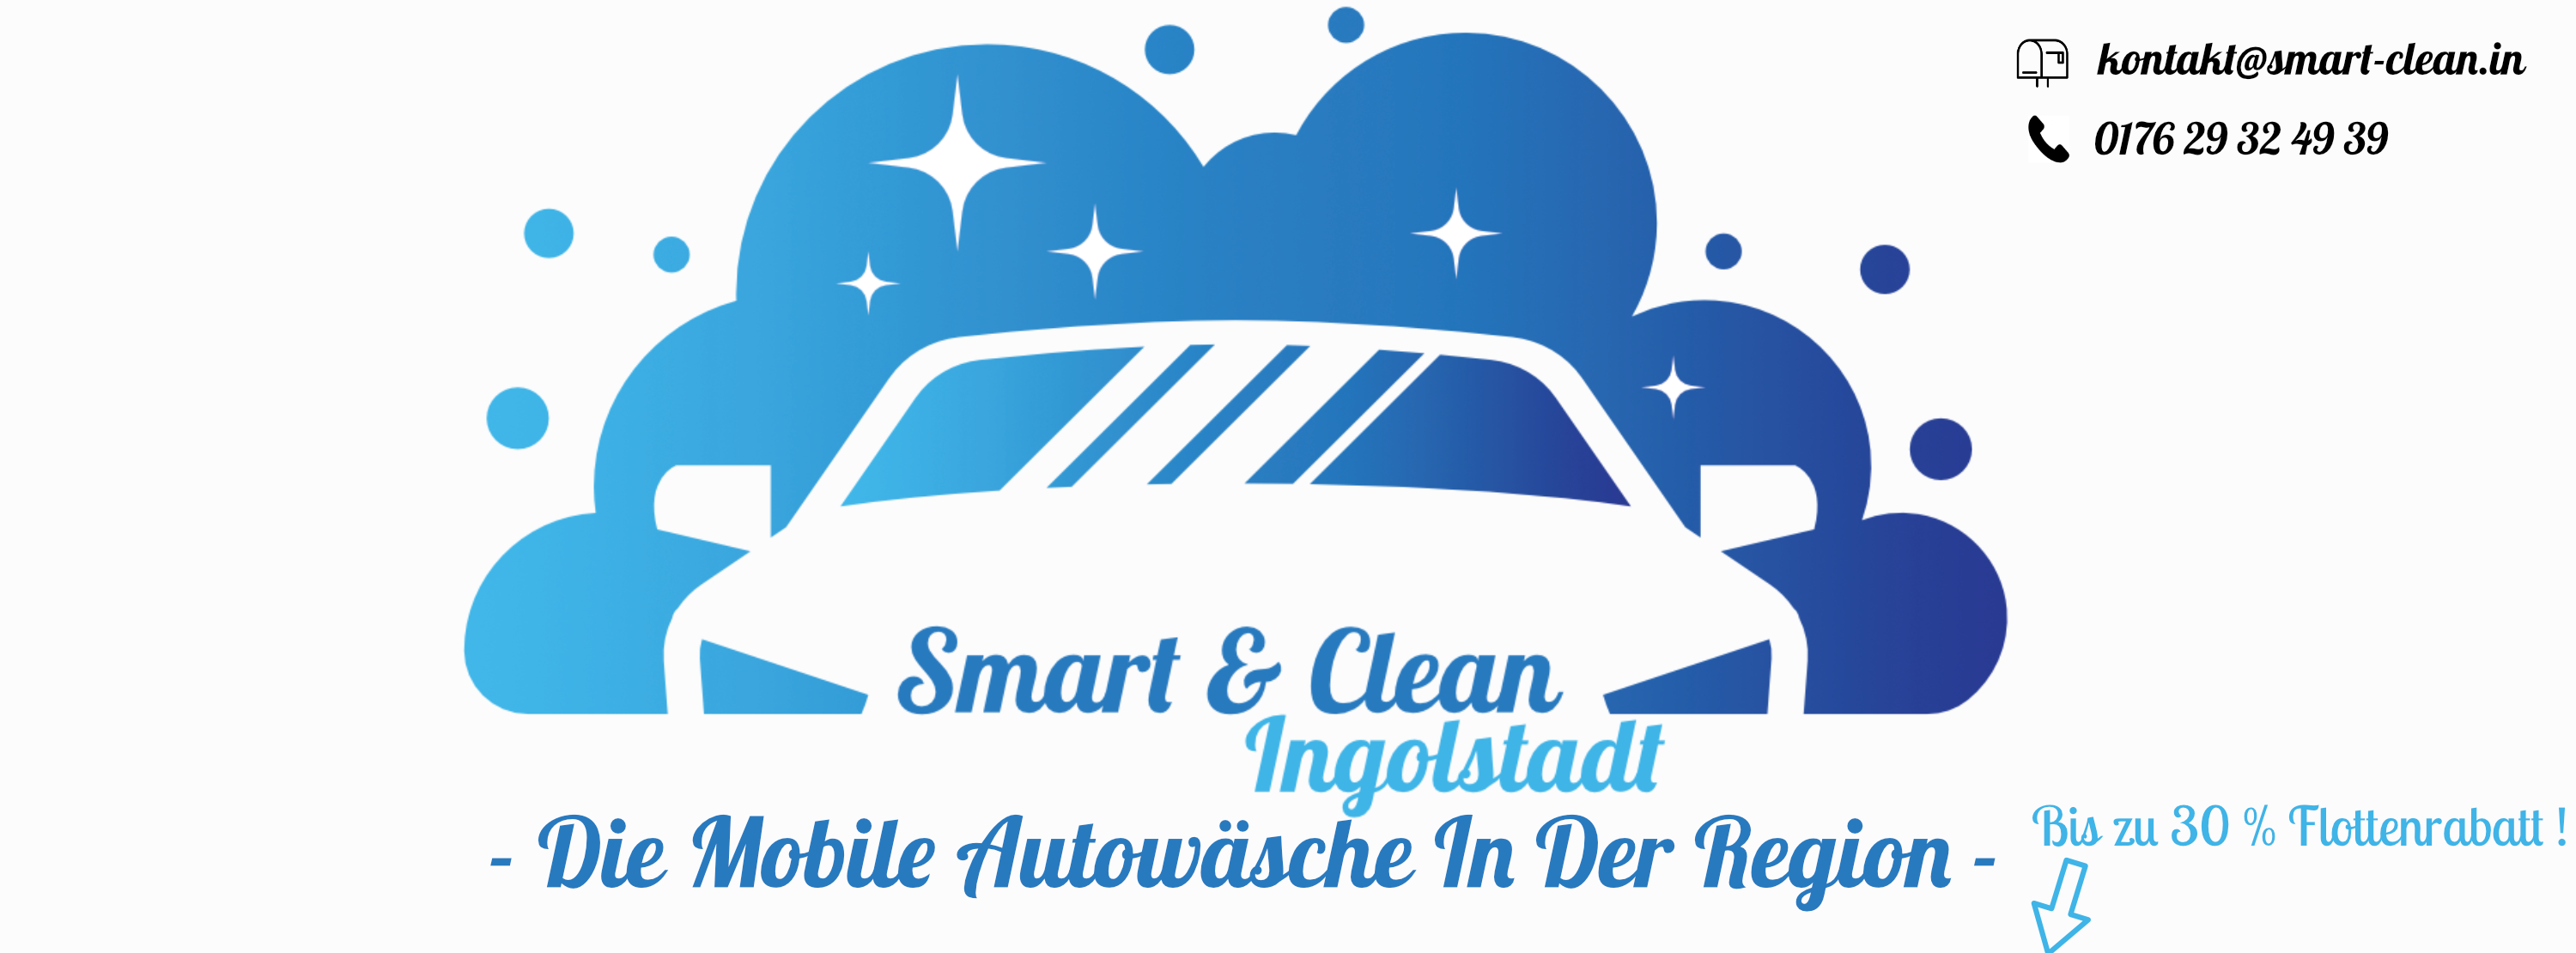 Smart & Clean Ingolstadt Logo